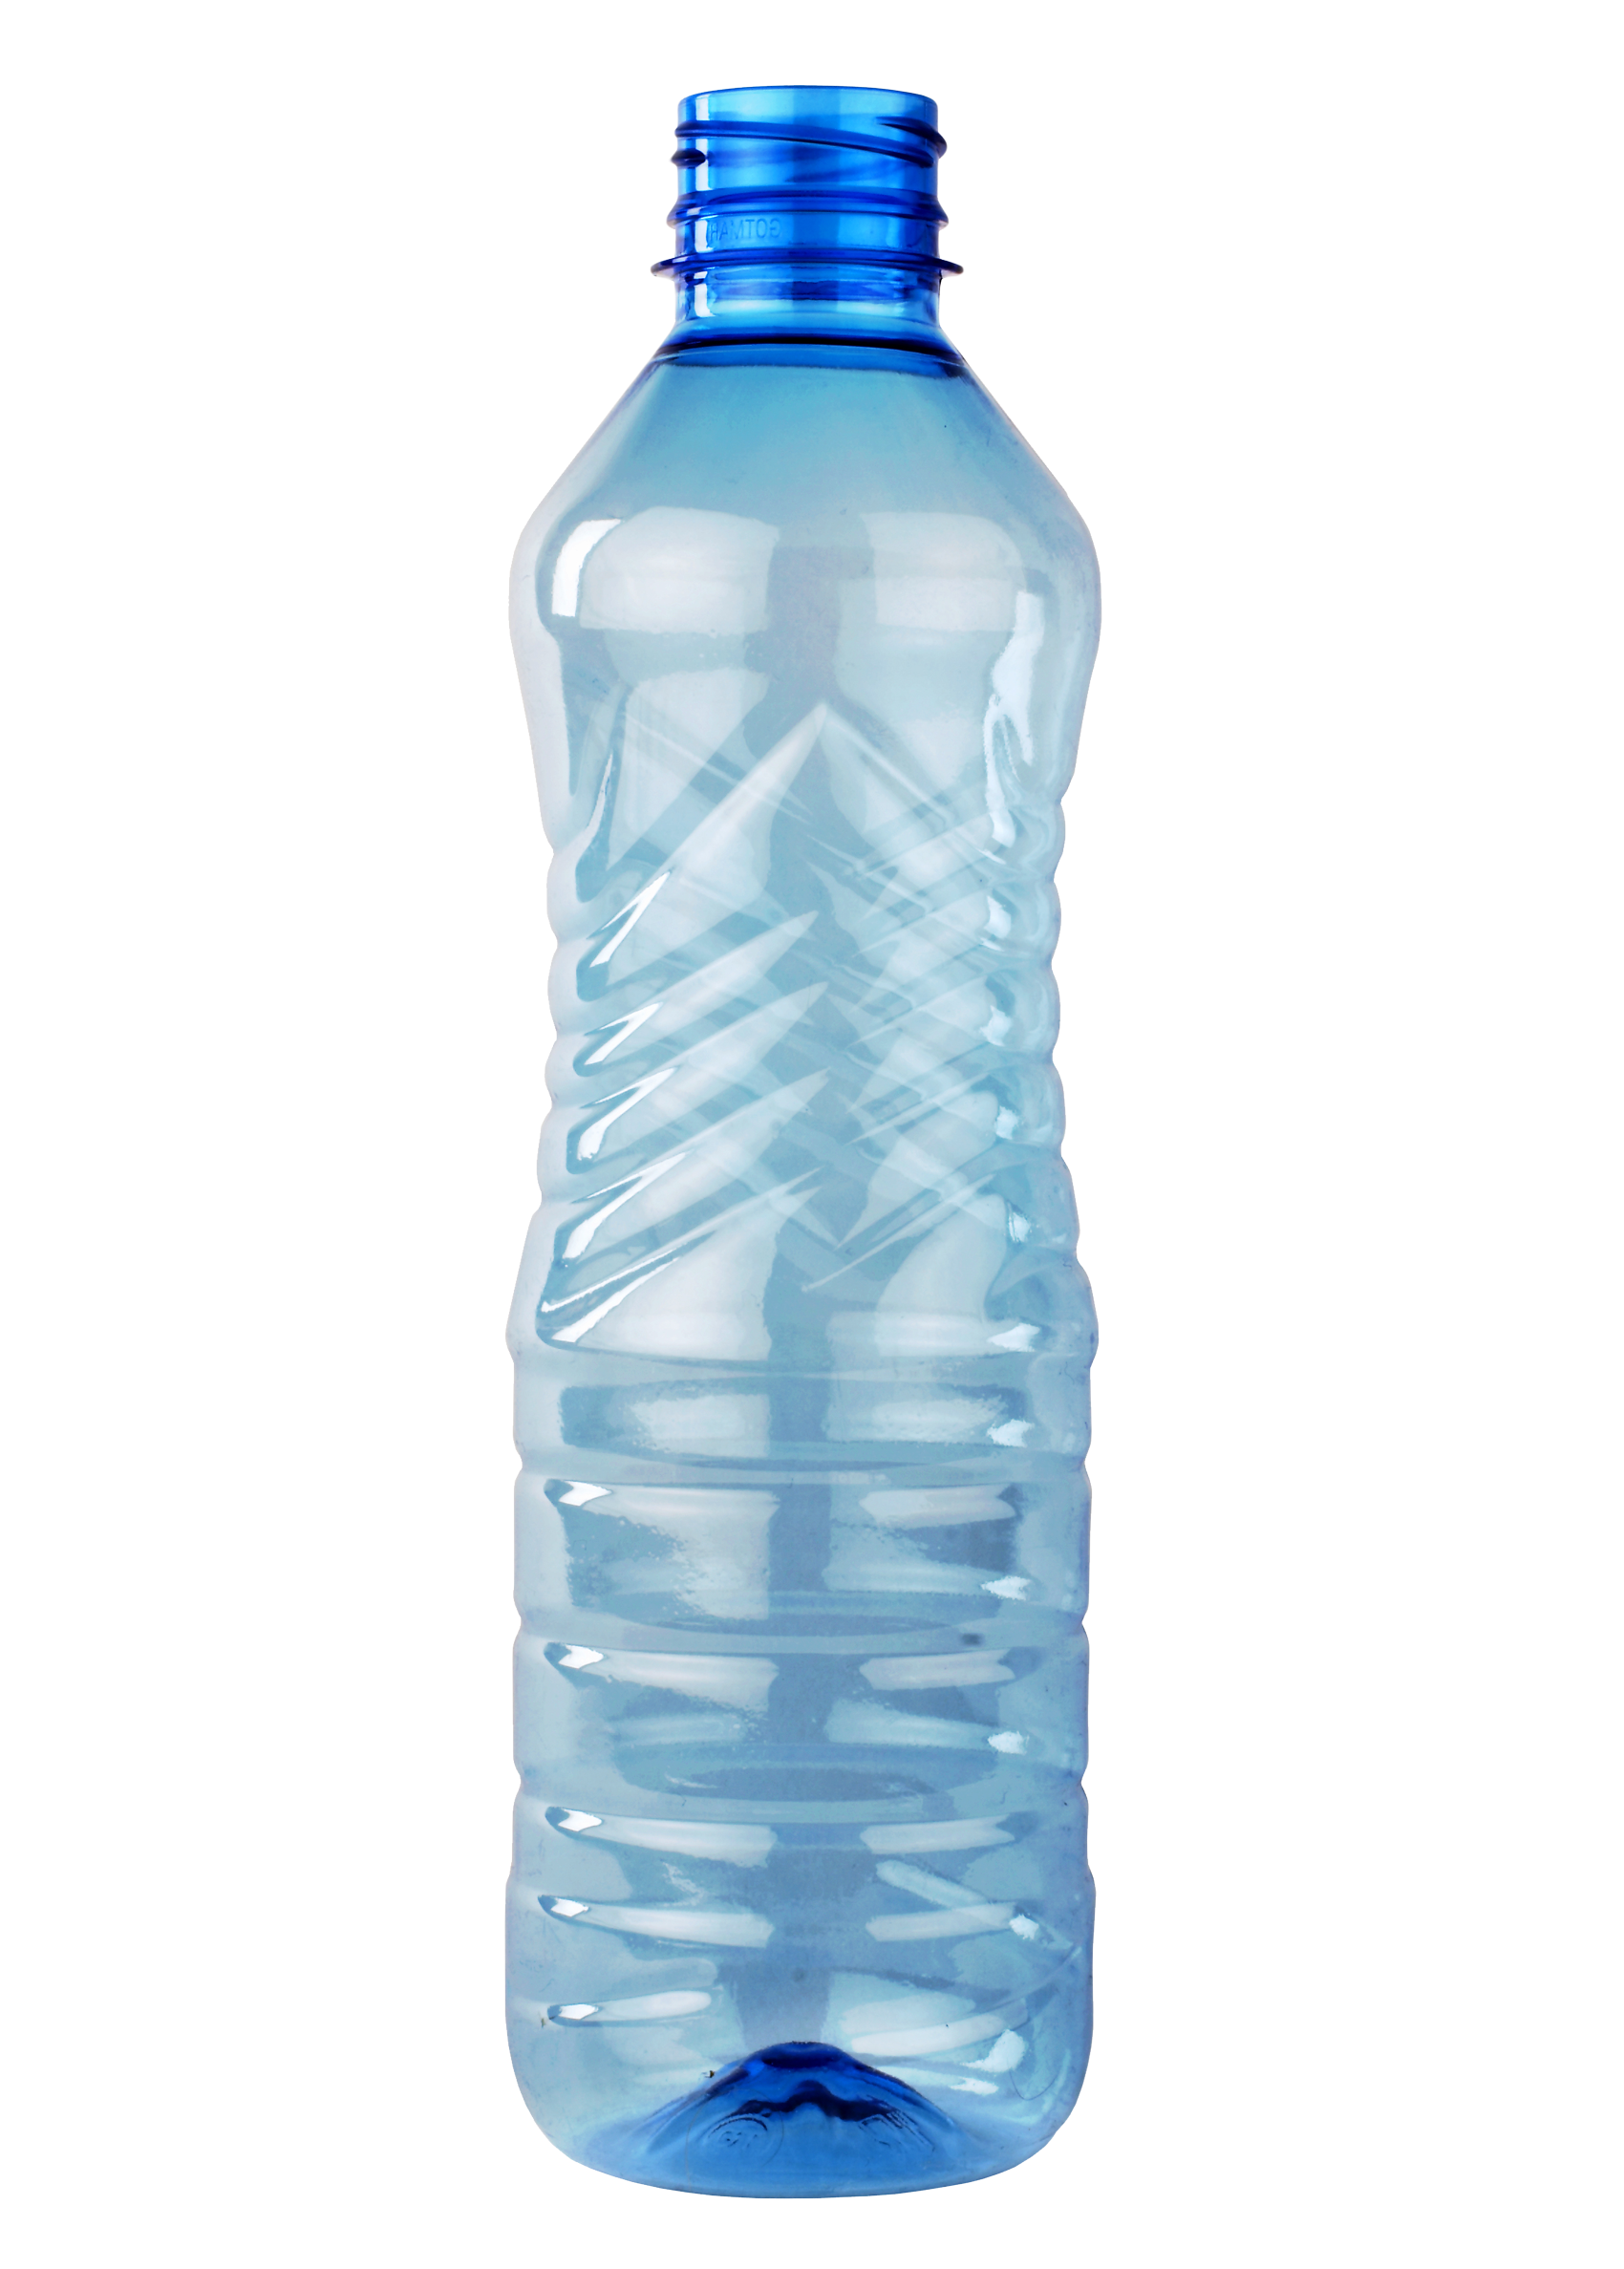 bottle water In the united states, bottled water costs between $025 and $2 per bottle while tap water costs less than a penny according to bottledwaterbluescom, about 90% of manufacturer's costs is from making the bottle, label, and cap.